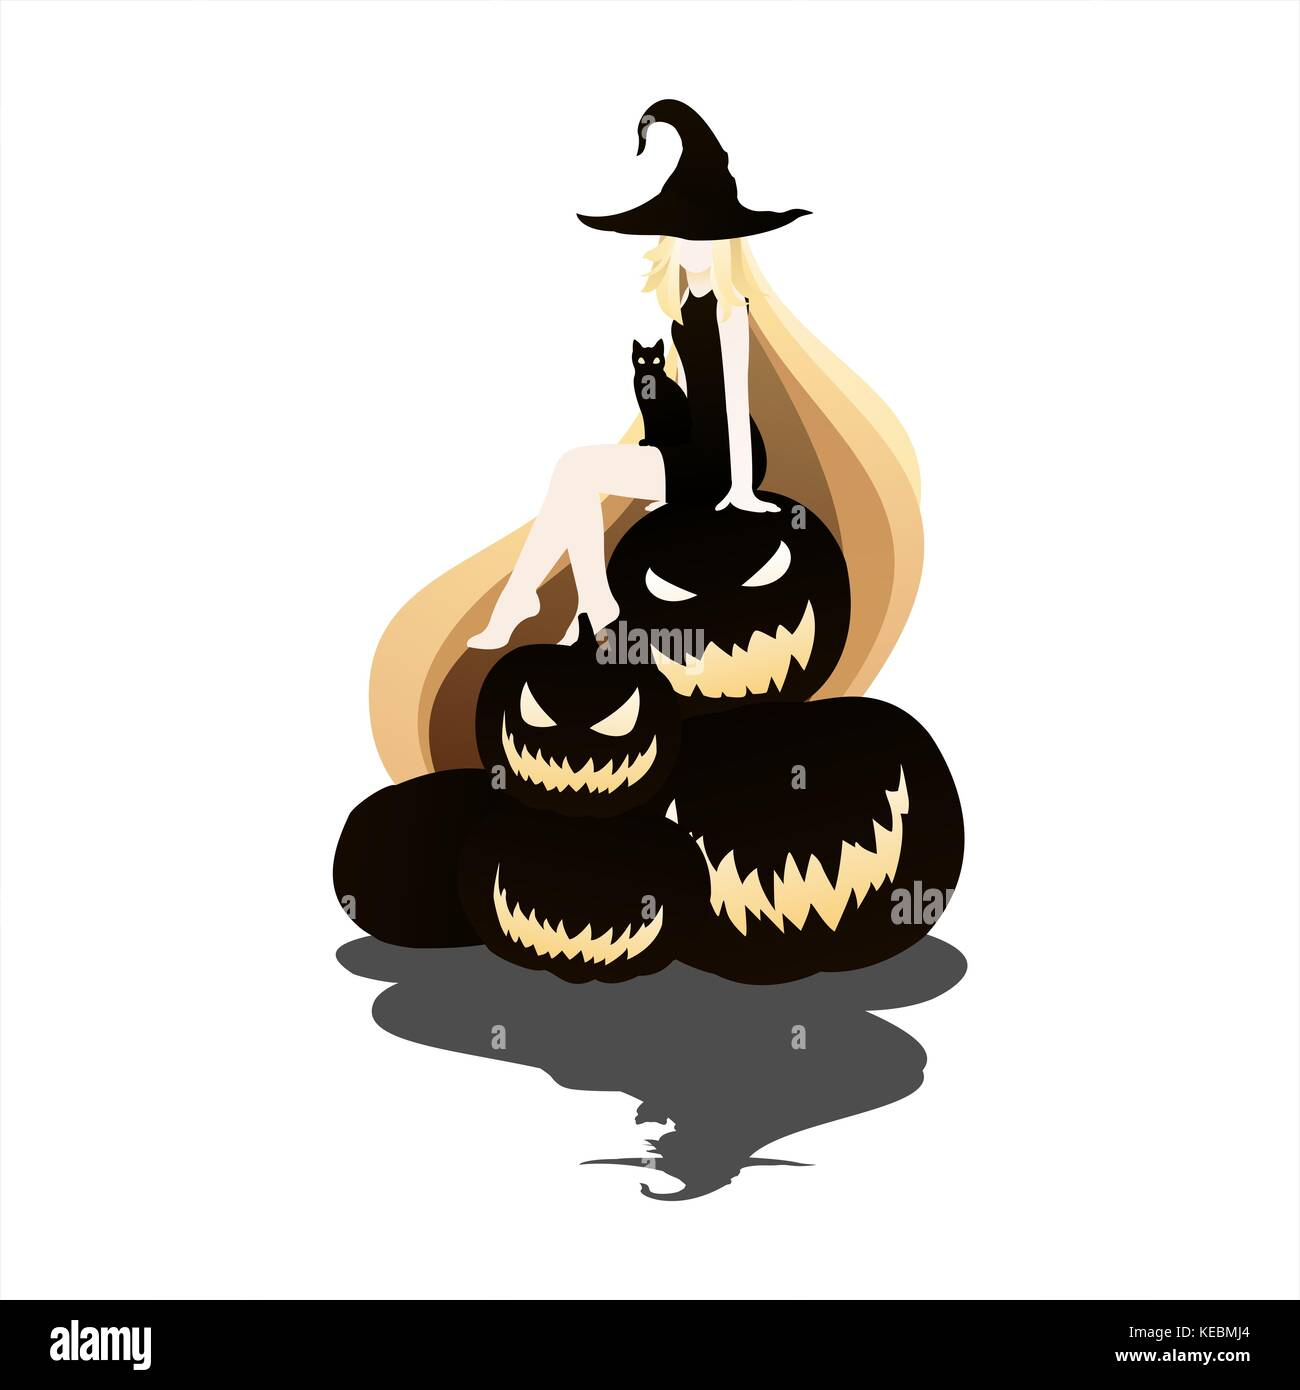 halloween silhouette card background - Stock Image